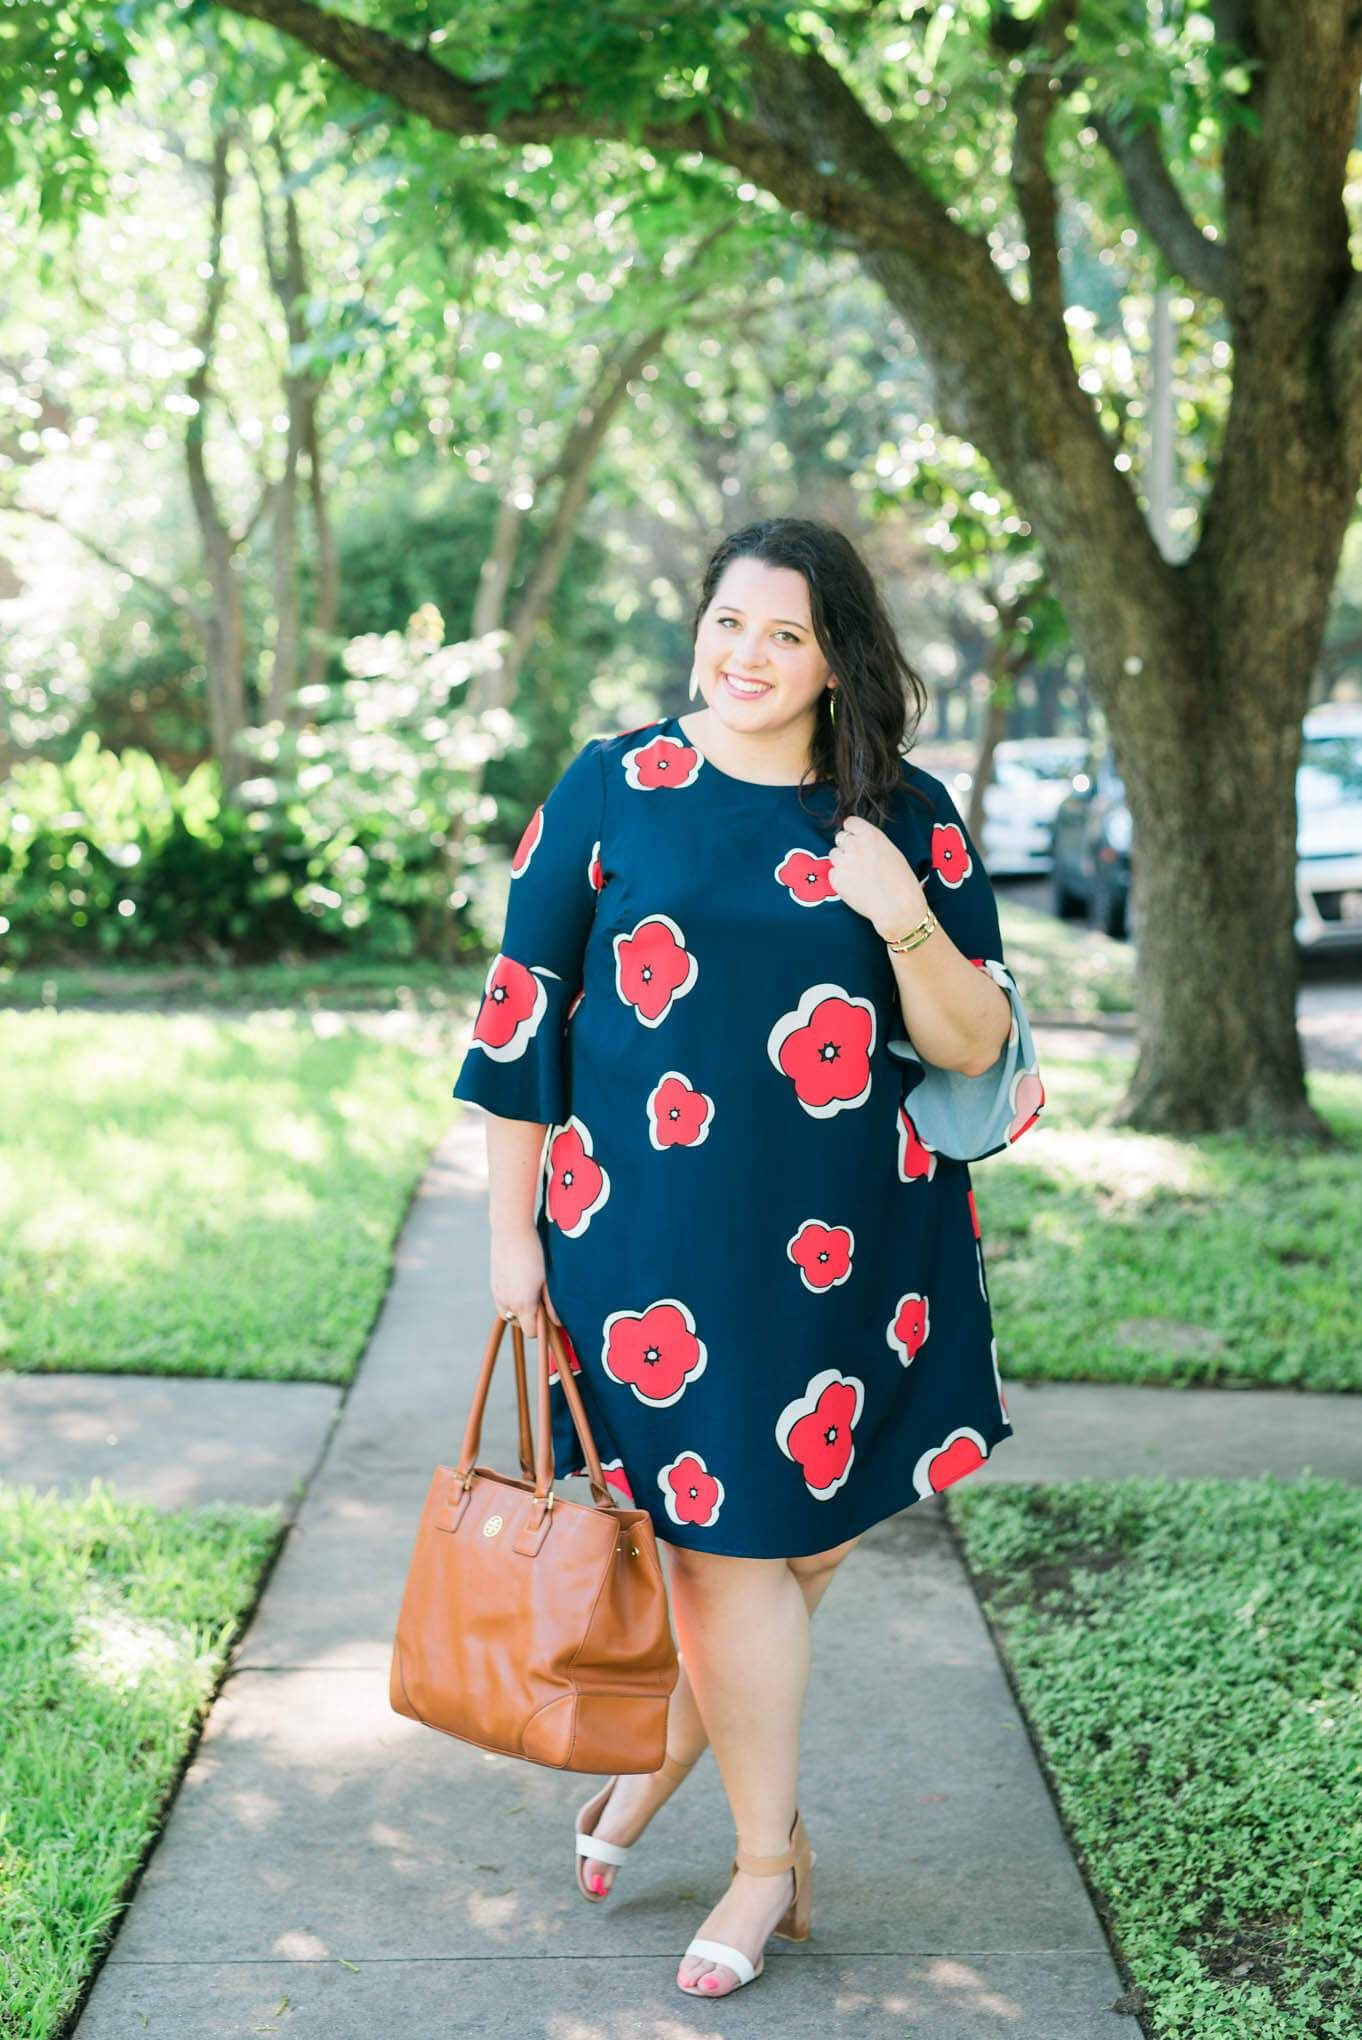 Plus Size Workwear Outfits, Polka dot, Business casual